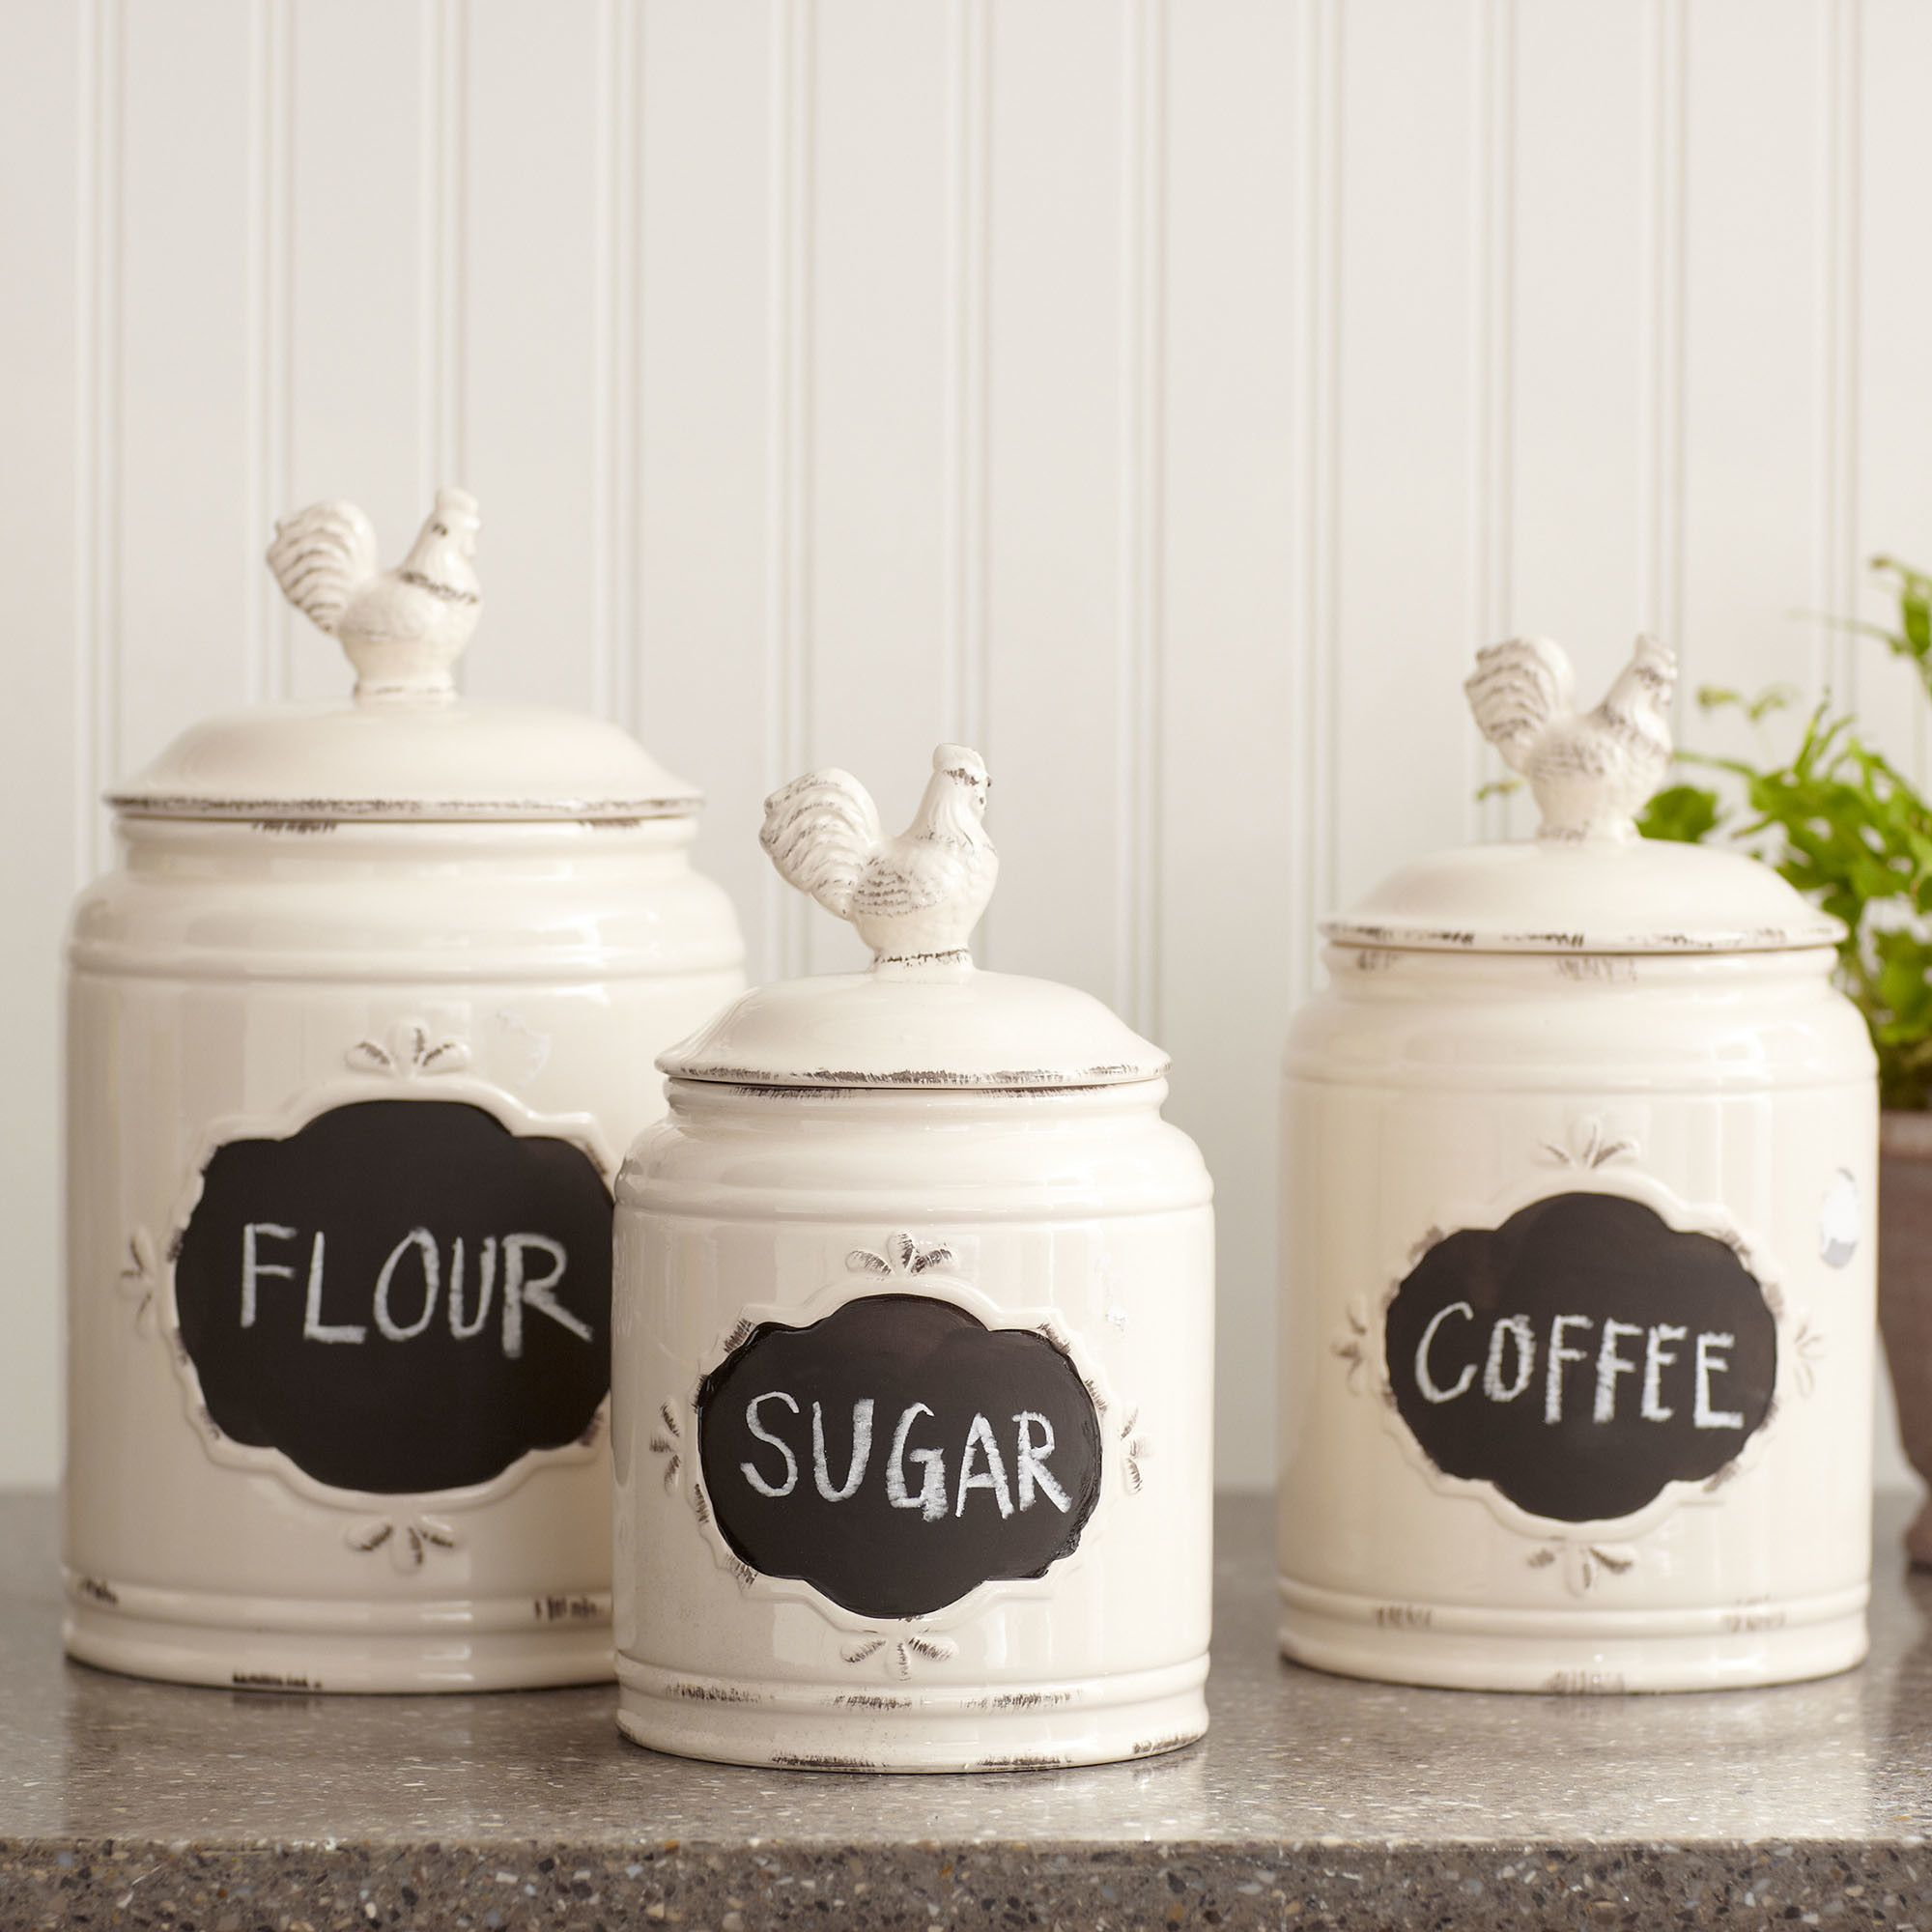 Decorative Kitchen Canisters Sets Retro Chairs Ceramic Stoneware Birch Lane Bantam